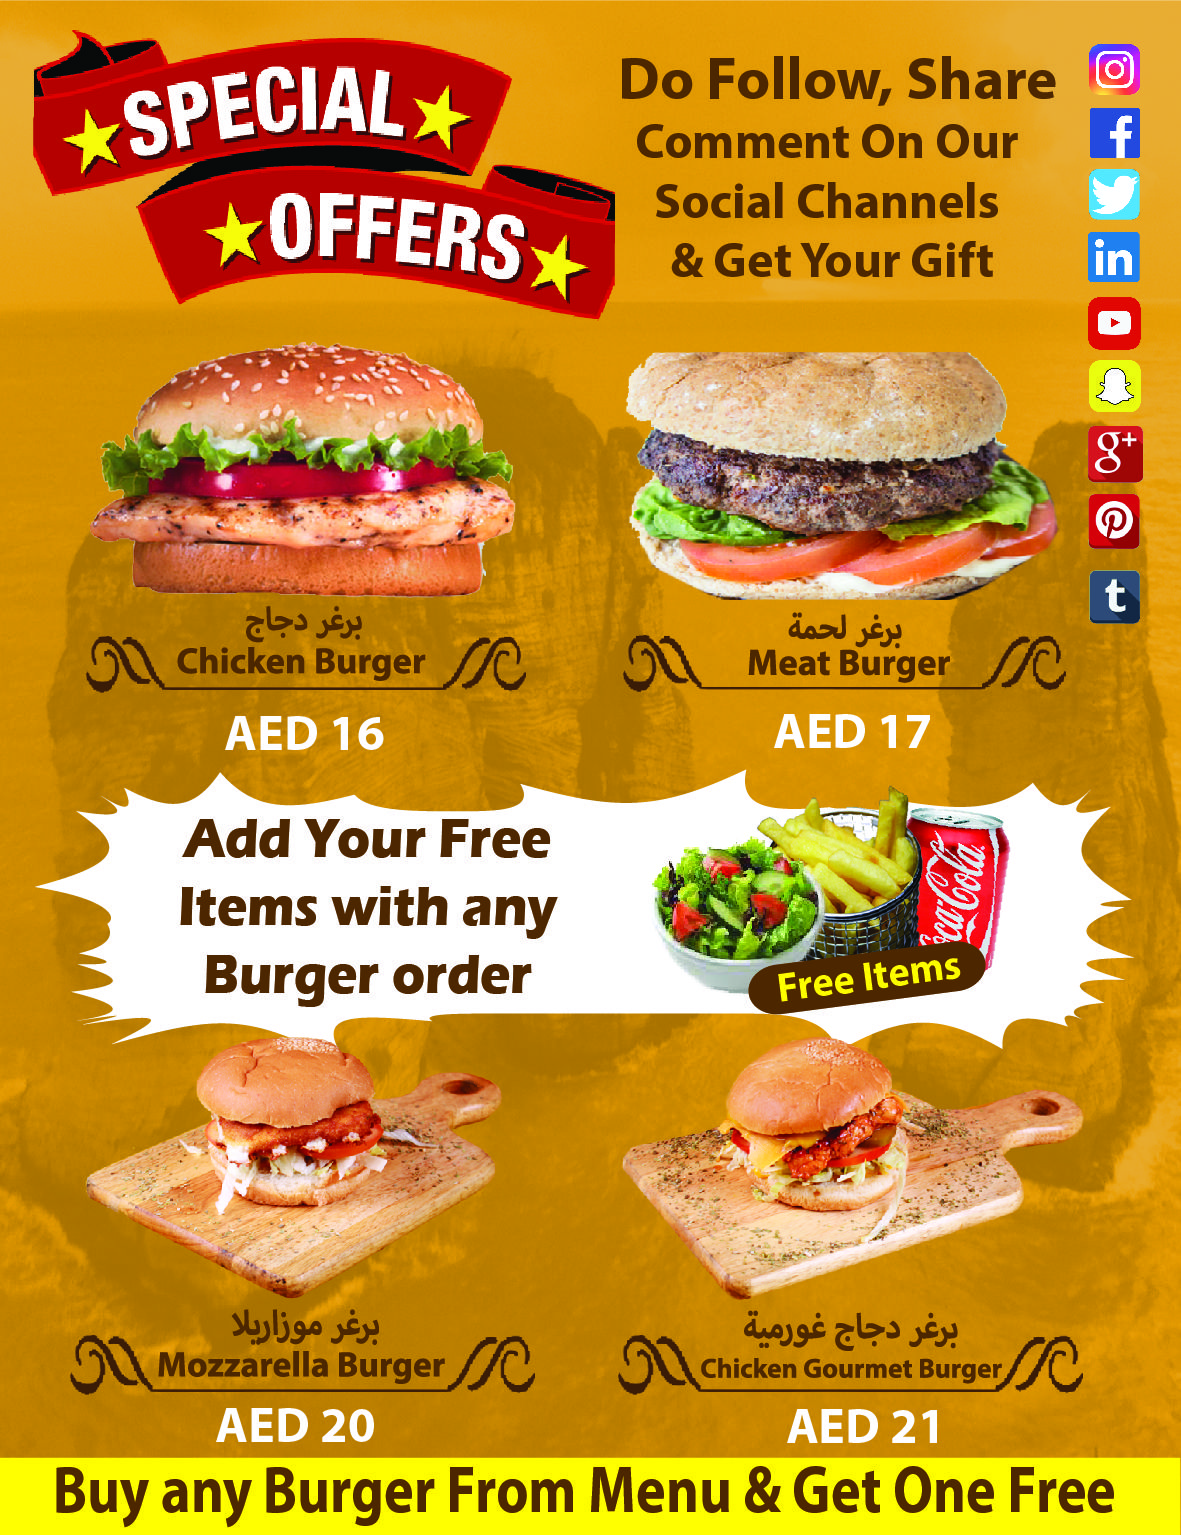 Unbeatable Burgers Offer @ Beyrock Restaurant and Cafe  #burgers